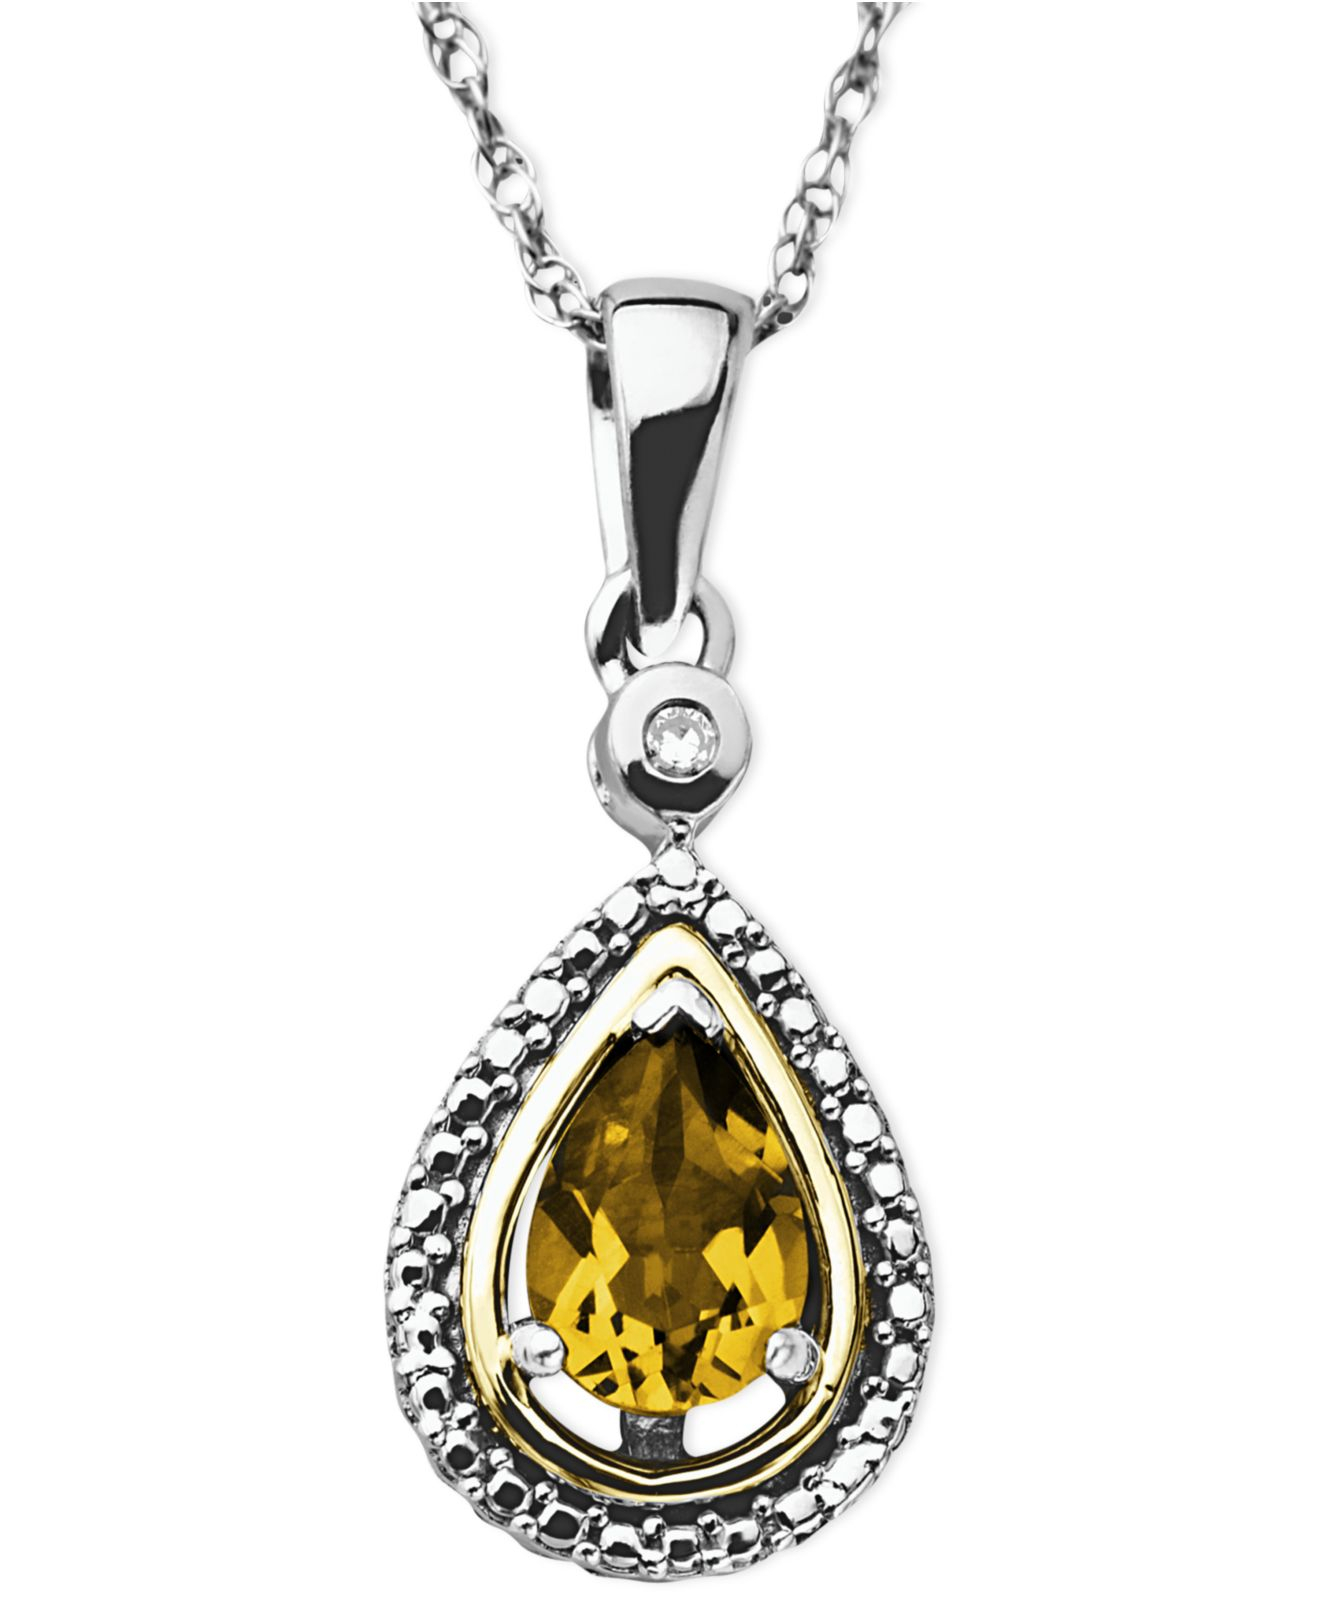 macys jewelry macy s 14k gold and sterling silver necklace citrine 5 8 7404